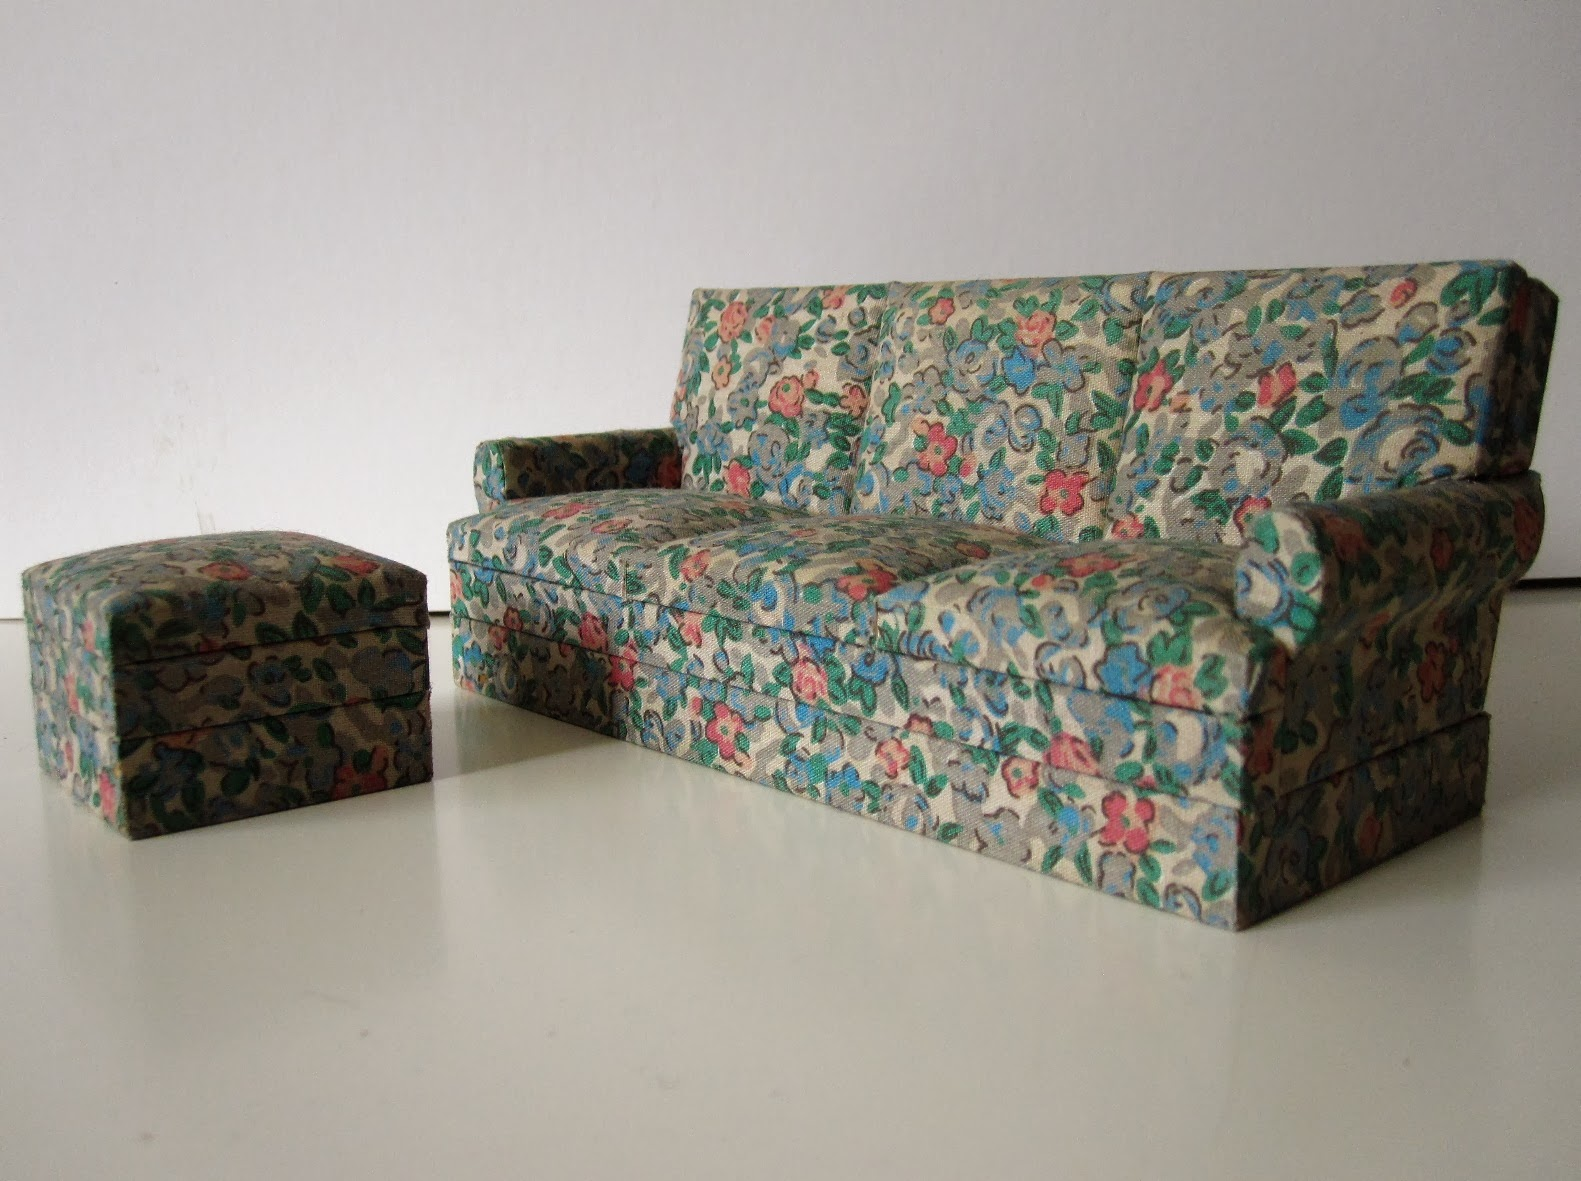 Vintage dolls house miniature three seater sofa and footstool from The Old Tythe Barn at Blackheath